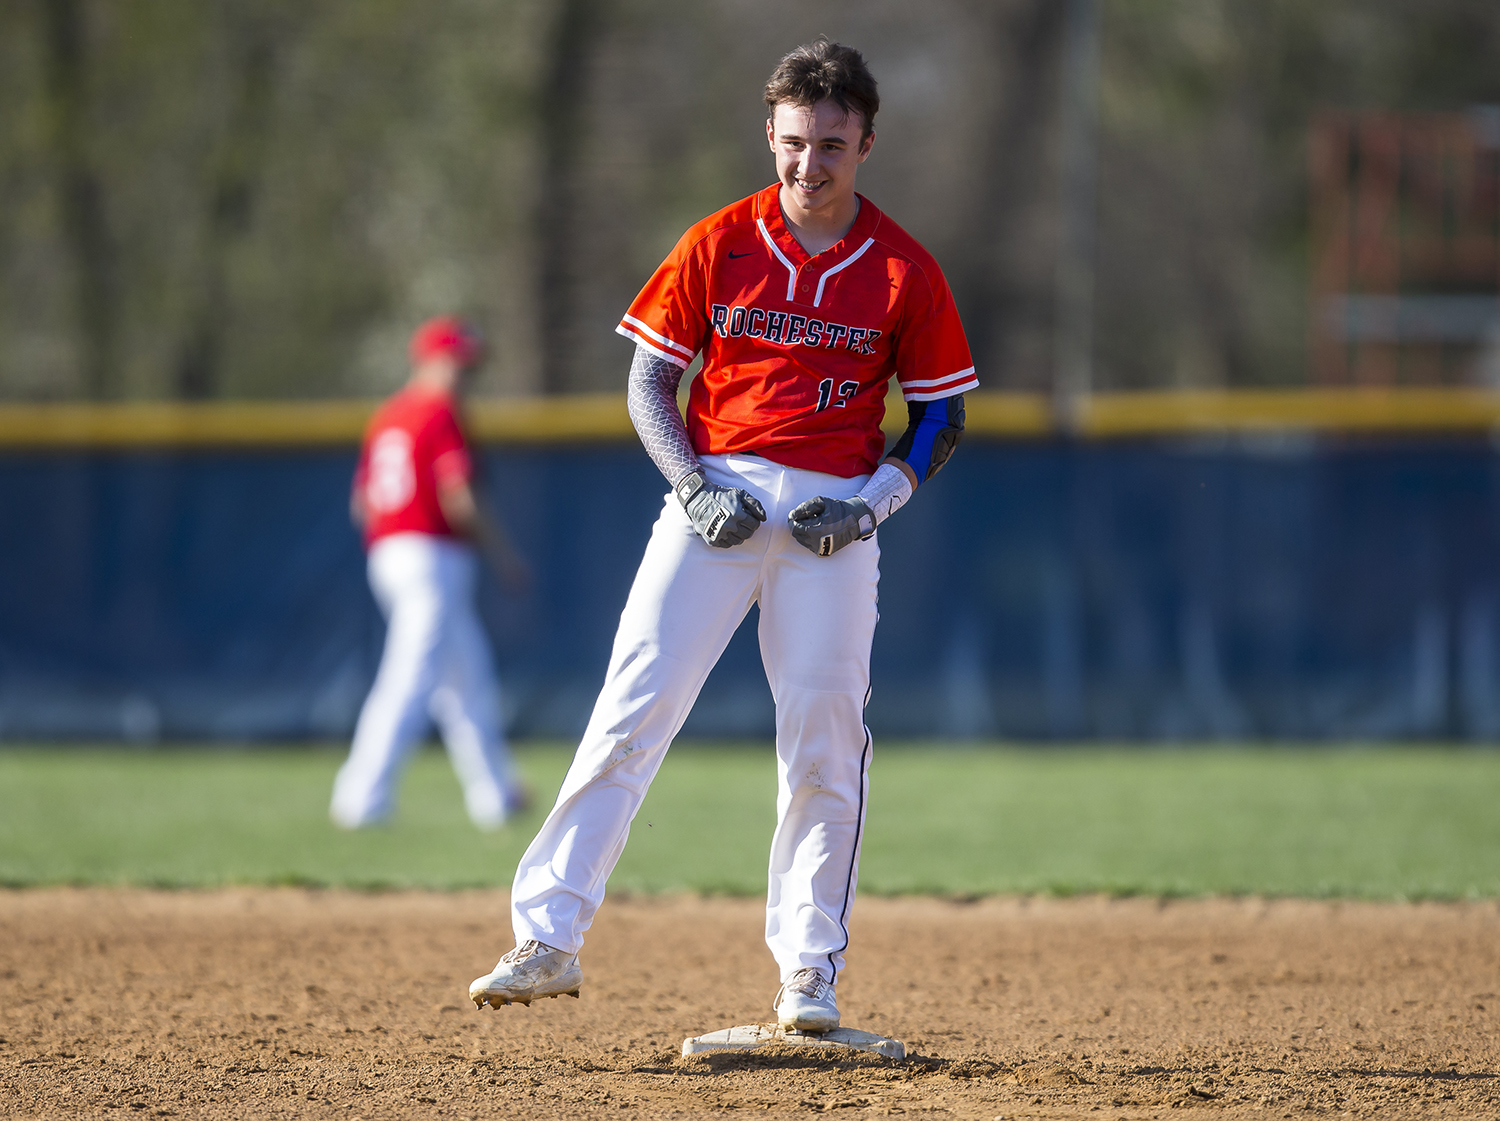 Rochester's Seth Parkinson (12) reacts after a double that scored two runs putting the Rockets up 5-3 over Glenwood in the fourth inning at Rochester High School, Tuesday, April 16, 2019, in Rochester, Ill. [Justin L. Fowler/The State Journal-Register]